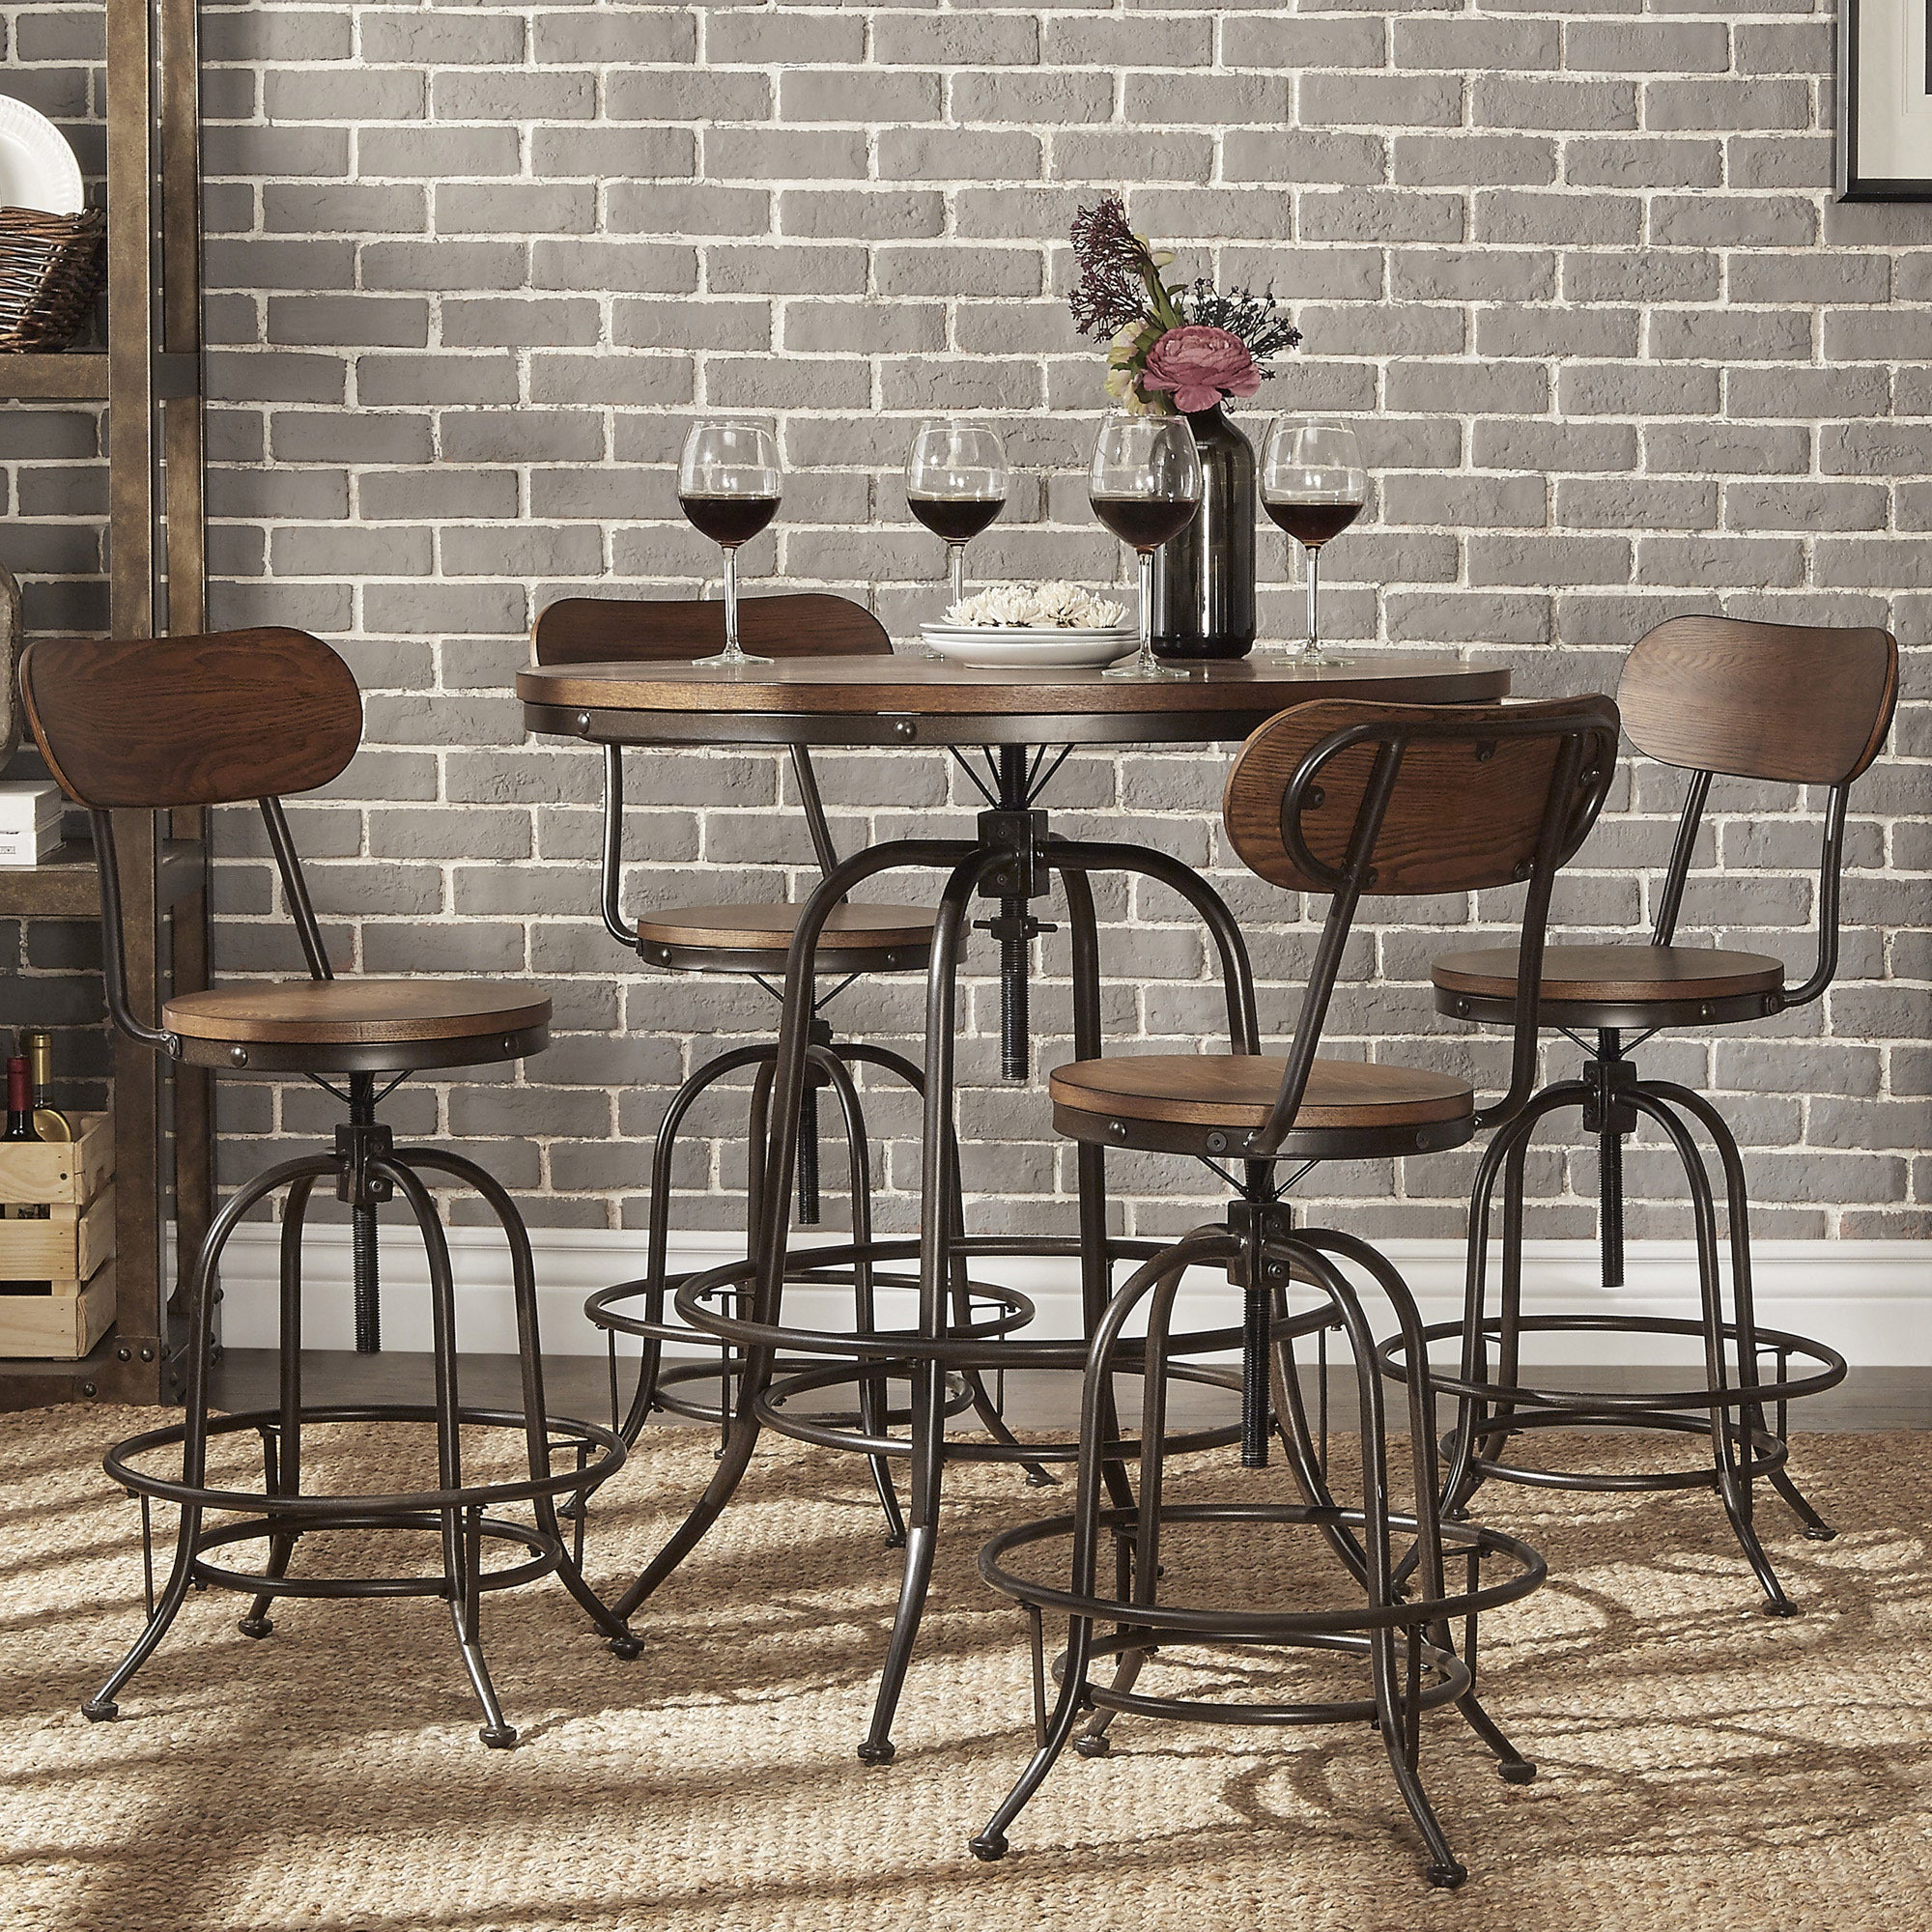 Berwick Industrial Style Round Counter Height Pub Adjustable Dining Set By  INSPIRE Q Classic   Free Shipping Today   Overstock   18012876